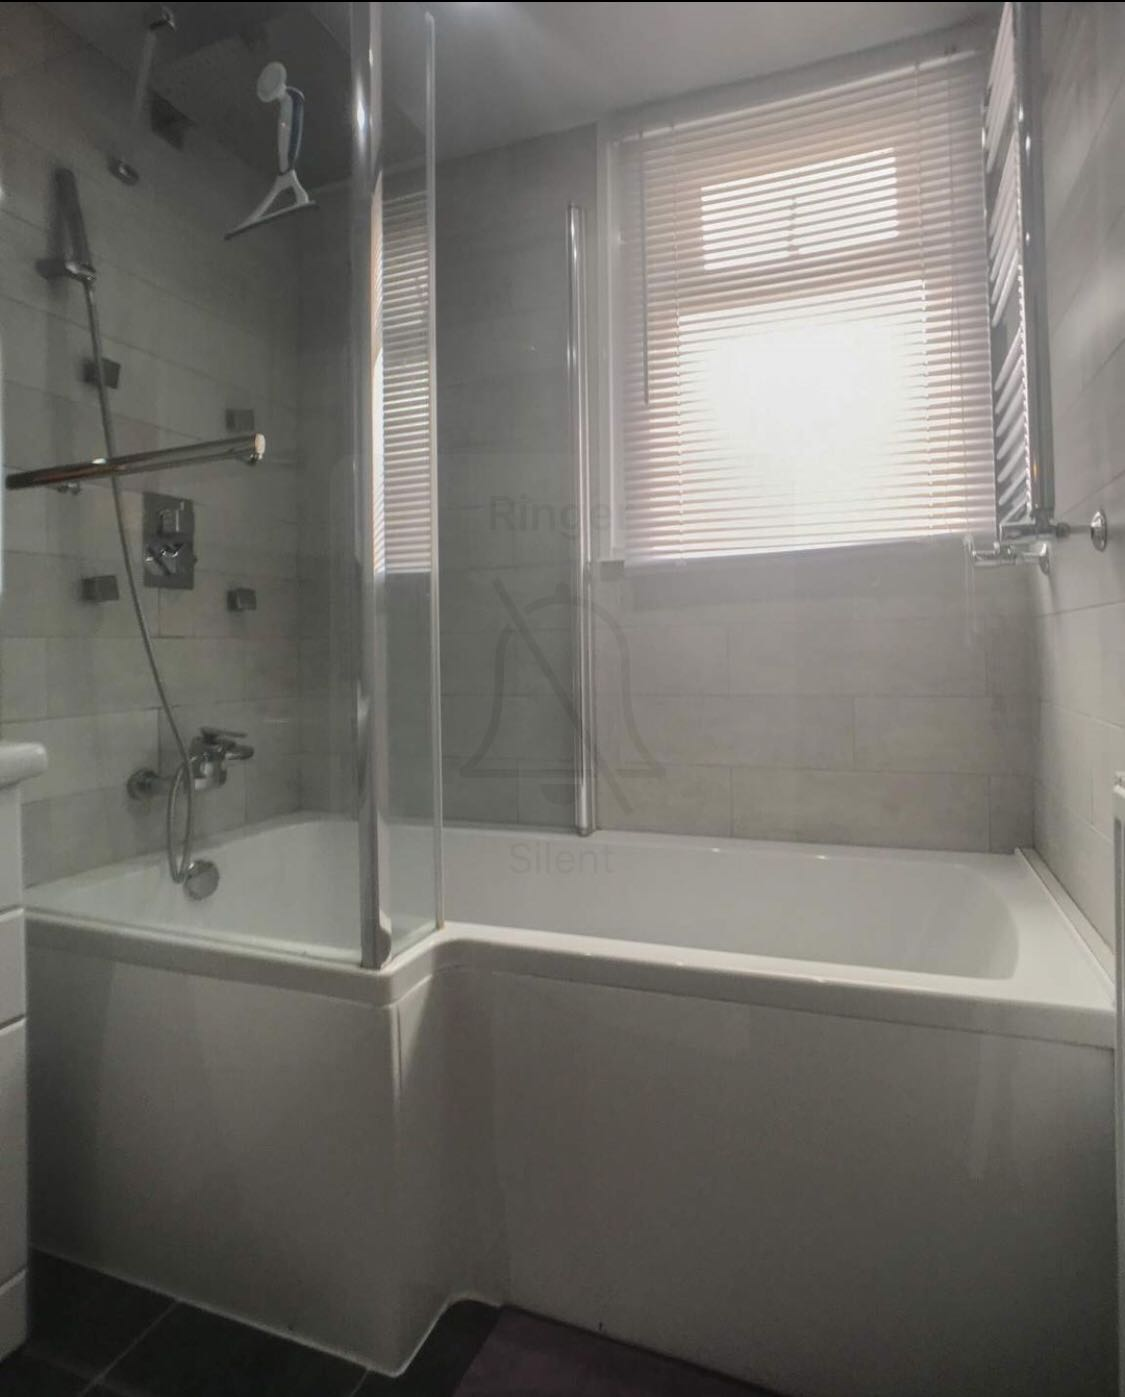 1 room in South Norwood, London, SE25 5JU RoomsLocal image